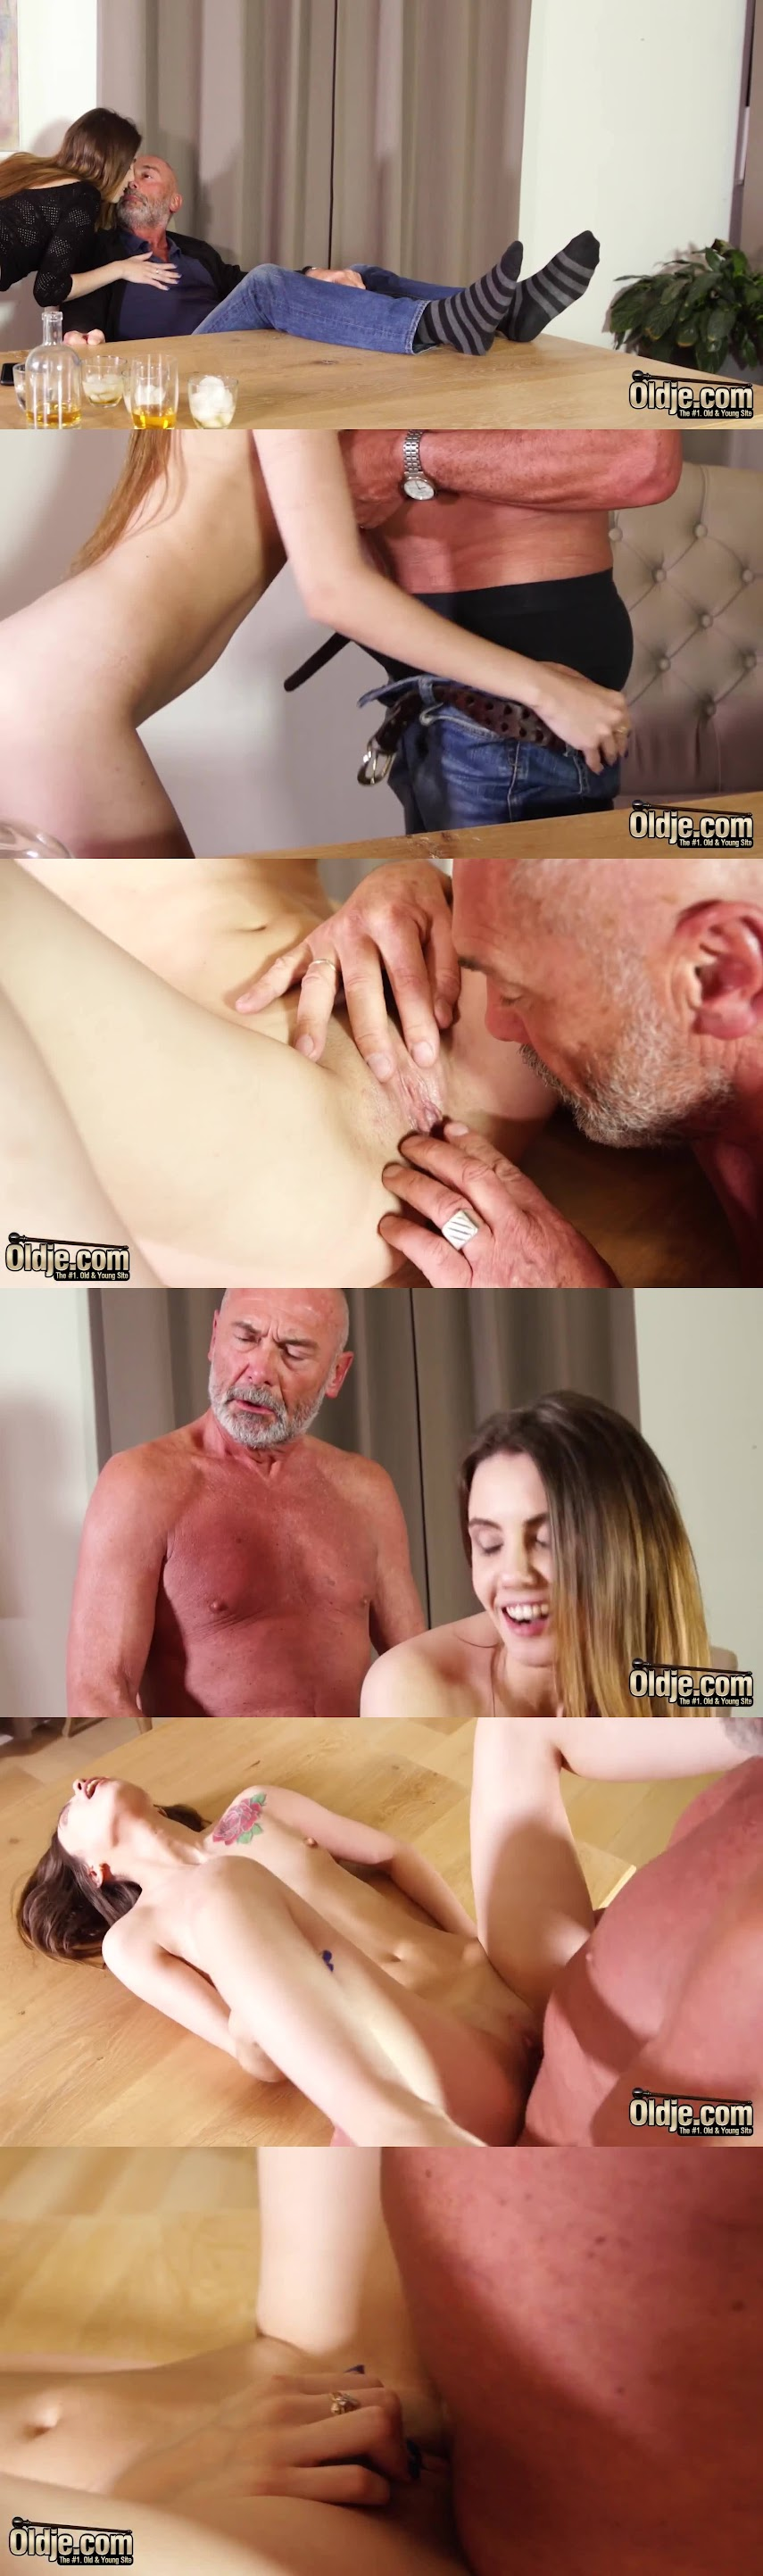 Old-Young Episode 758 You Cant Stop Me Elle Rose